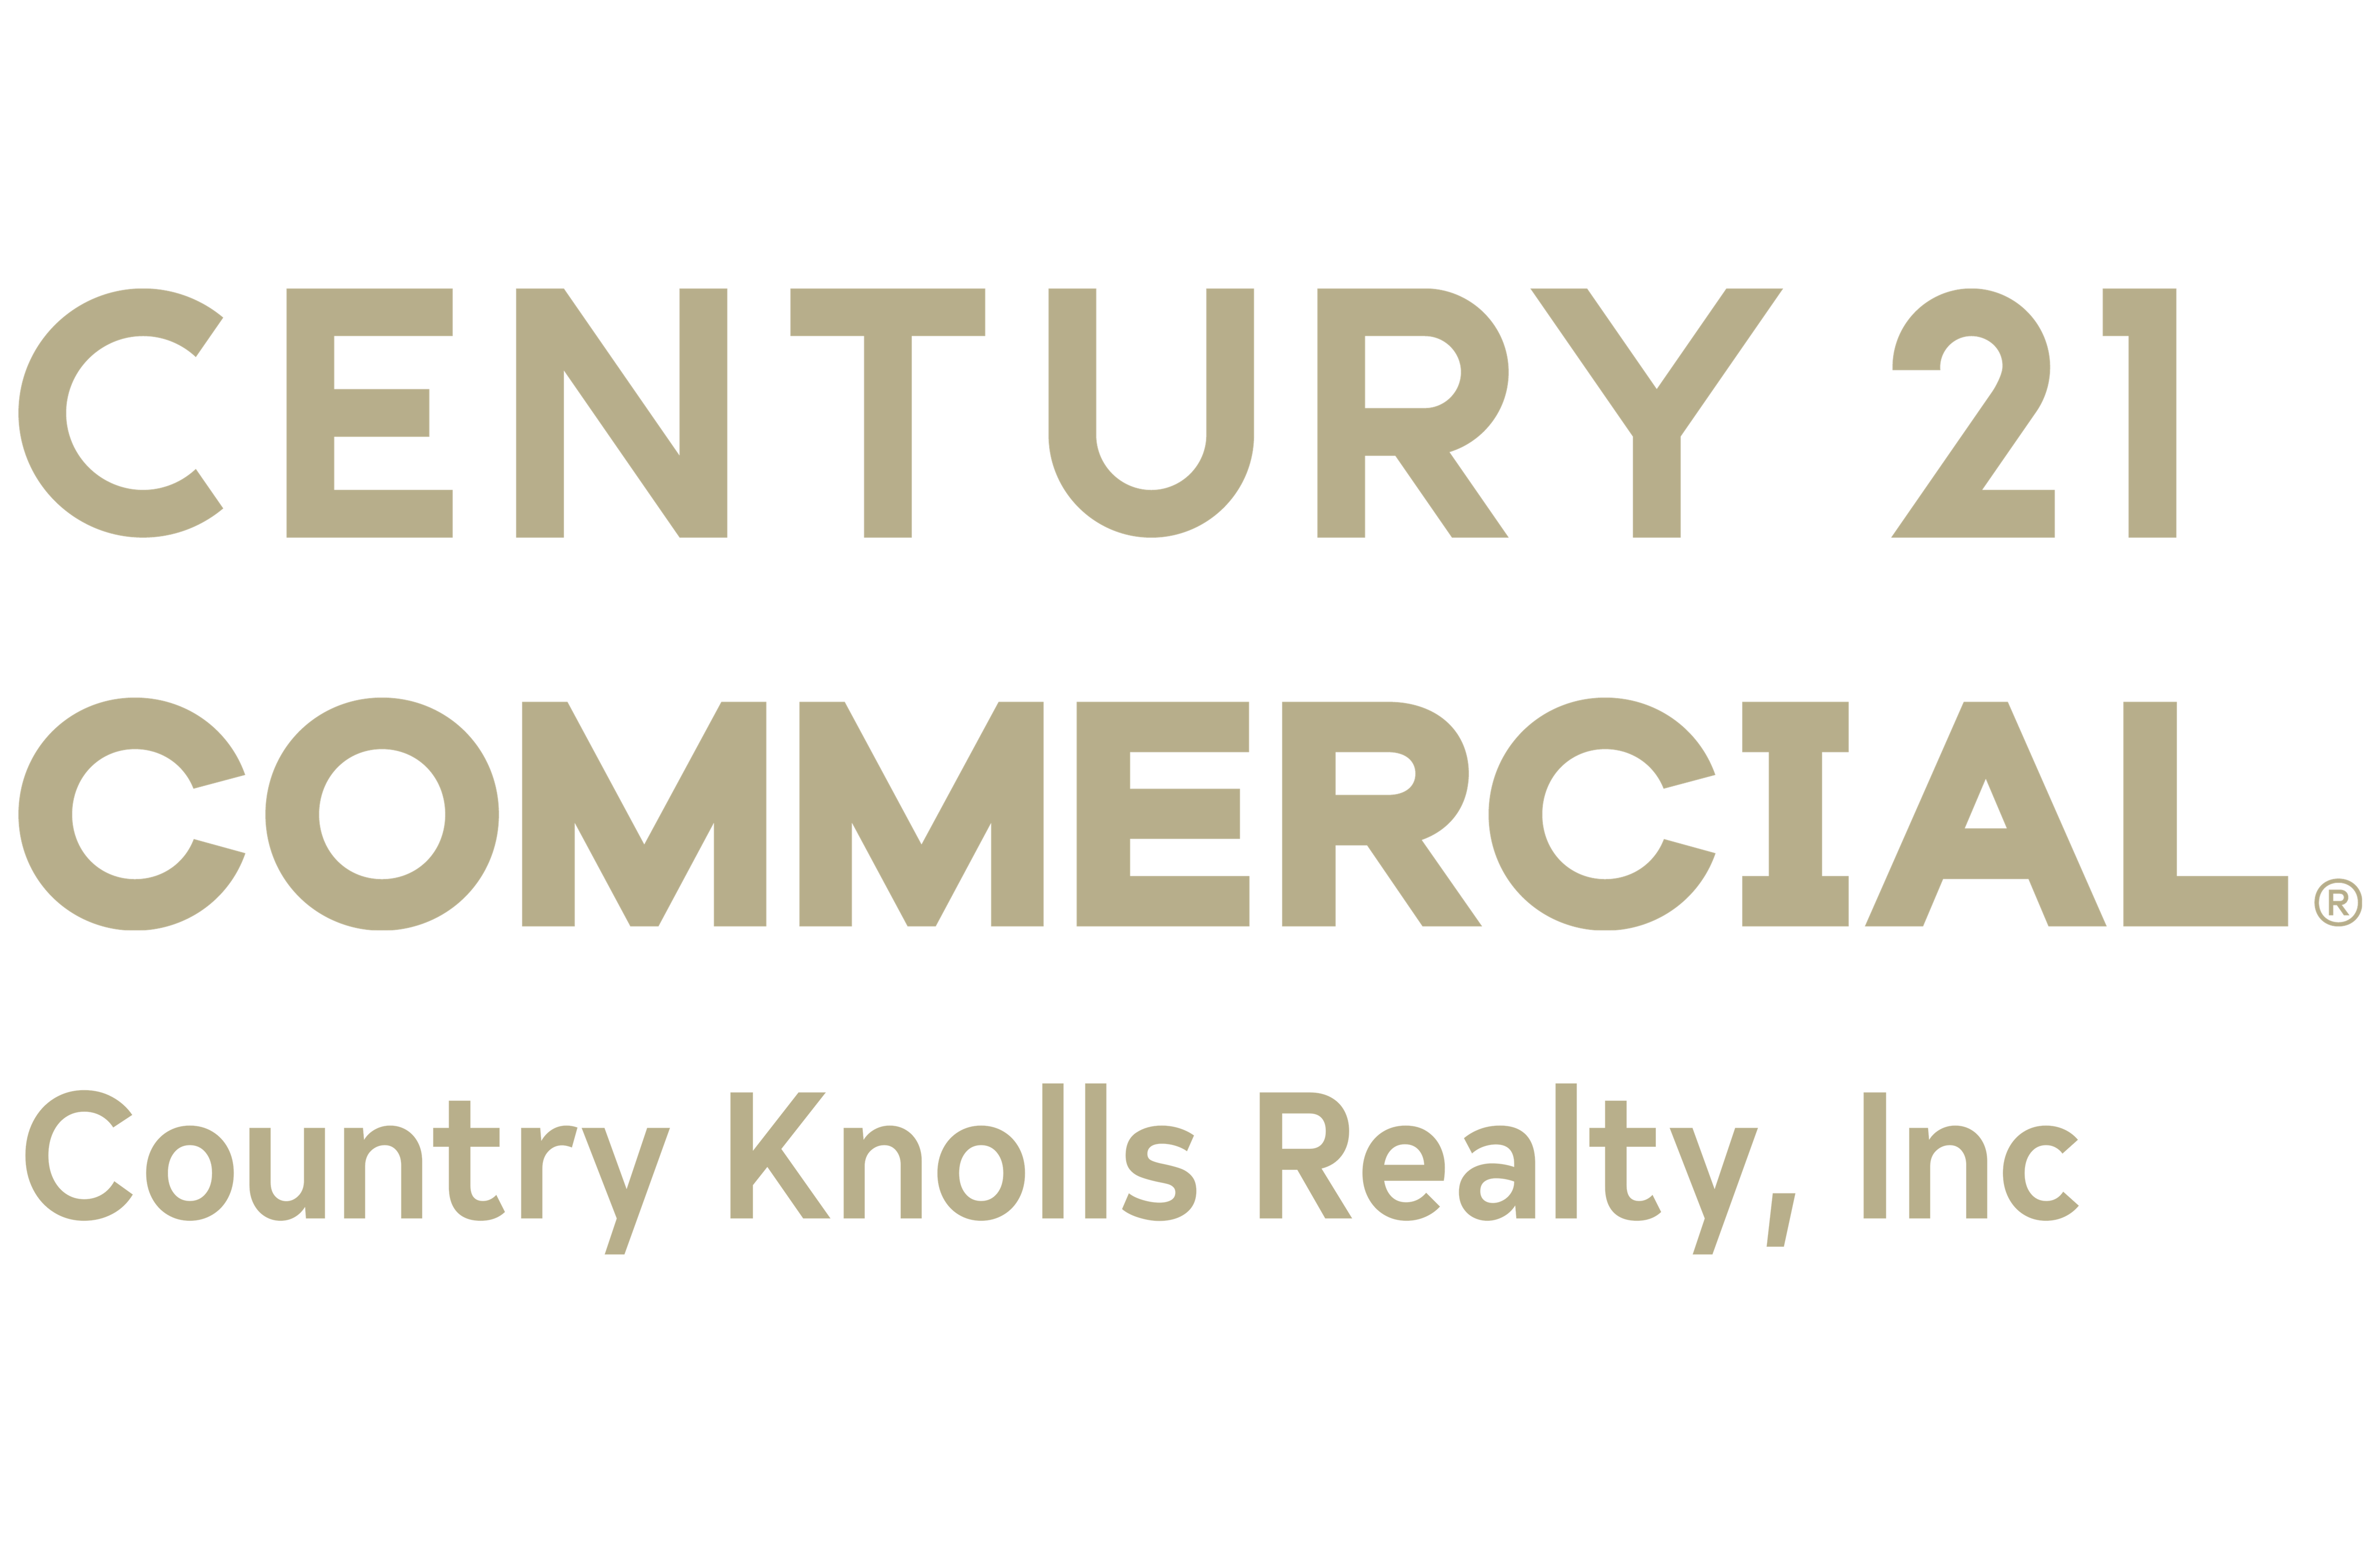 CENTURY 21 Country Knolls Realty, Inc